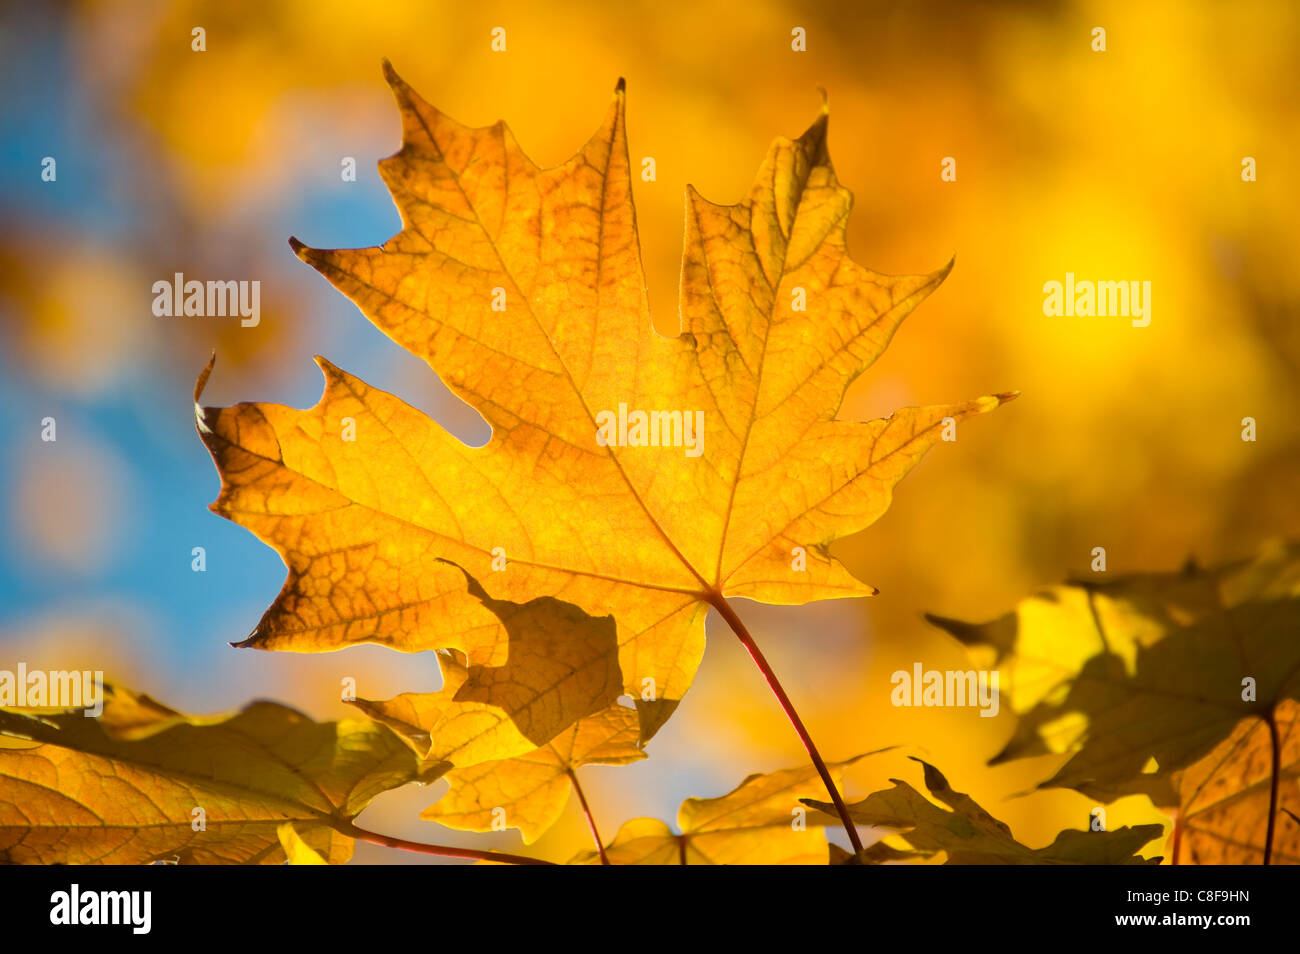 Bright yellow maple leaves in autumn, Vermont, New England, United States of America - Stock Image